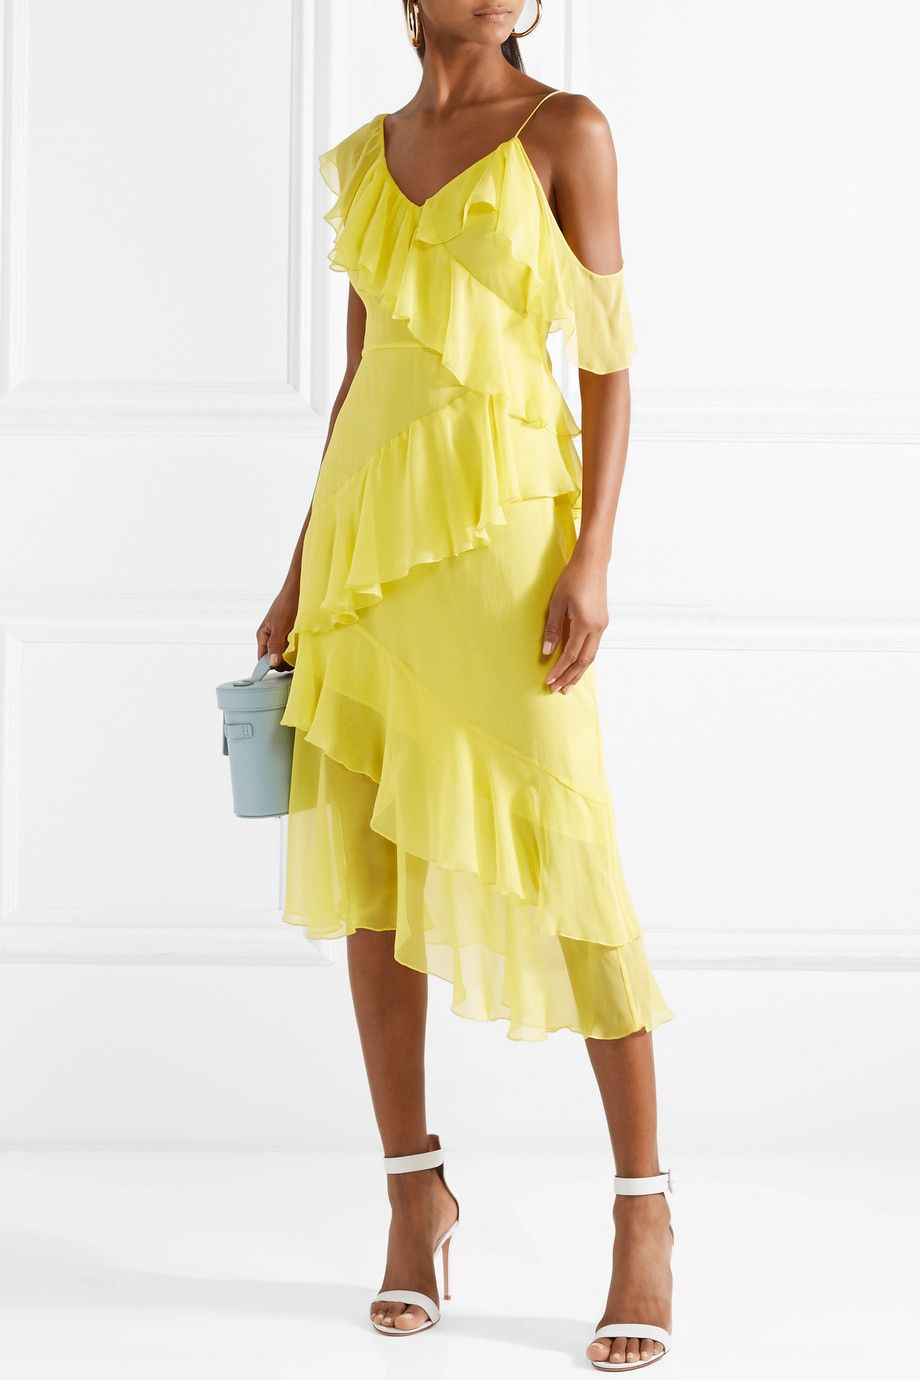 Olympia Cold-shoulder Ruffled Silk-chiffon Midi Dress - Bright yellow Alice & Olivia Sale Sale Online Outlet Choice Factory Outlet Cheap Online With Paypal Sale Online gaYWg